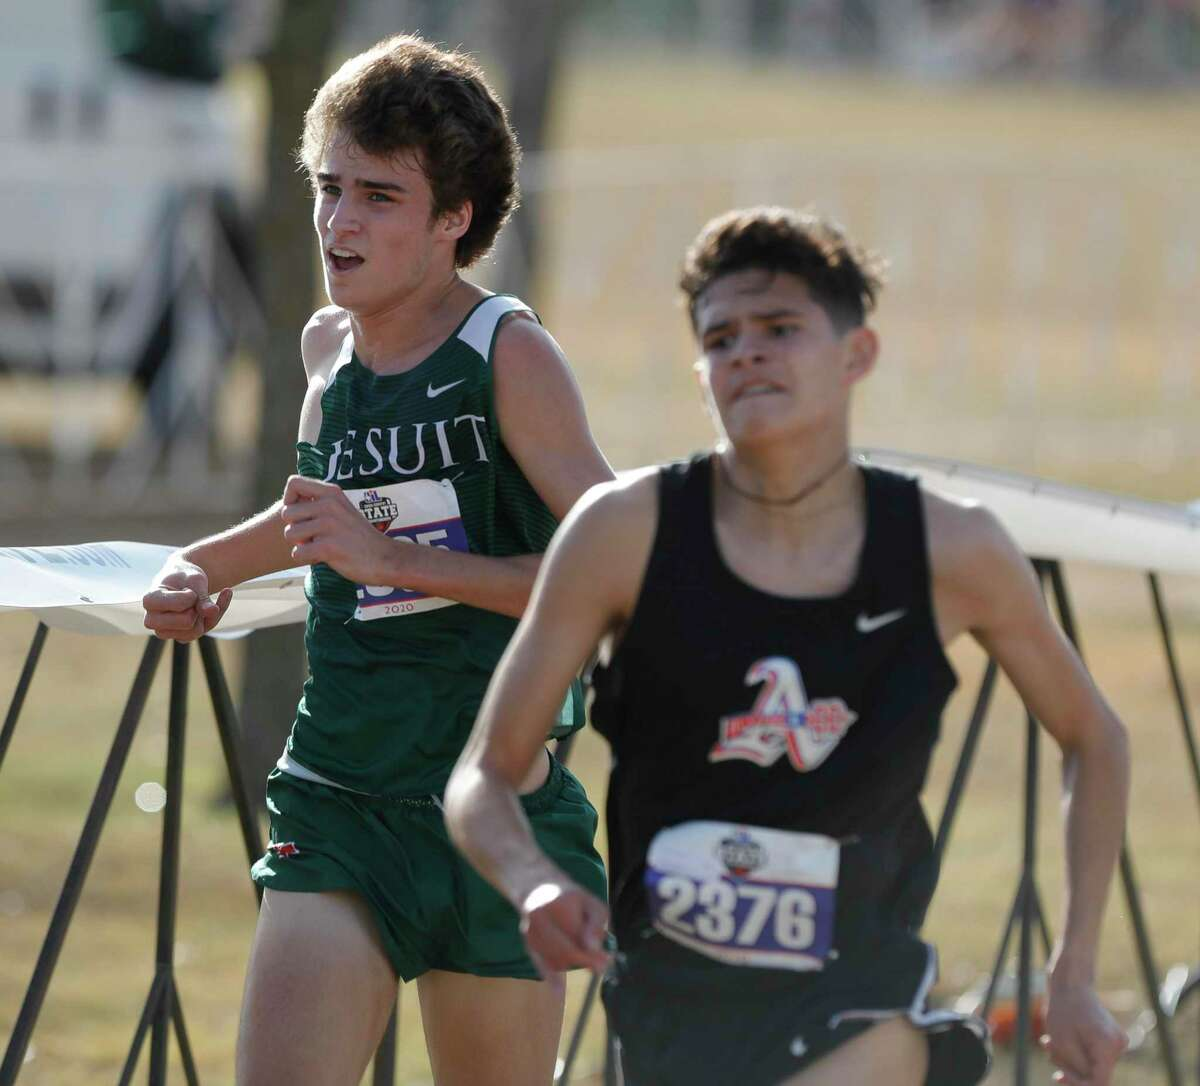 Anthony Gregory of Strake Jesuit competes in the Class 6A race during the UIL State Cross Country Championships at Old Settlers Park, Tuesday, Nov. 24, 2020, in Round Rock.